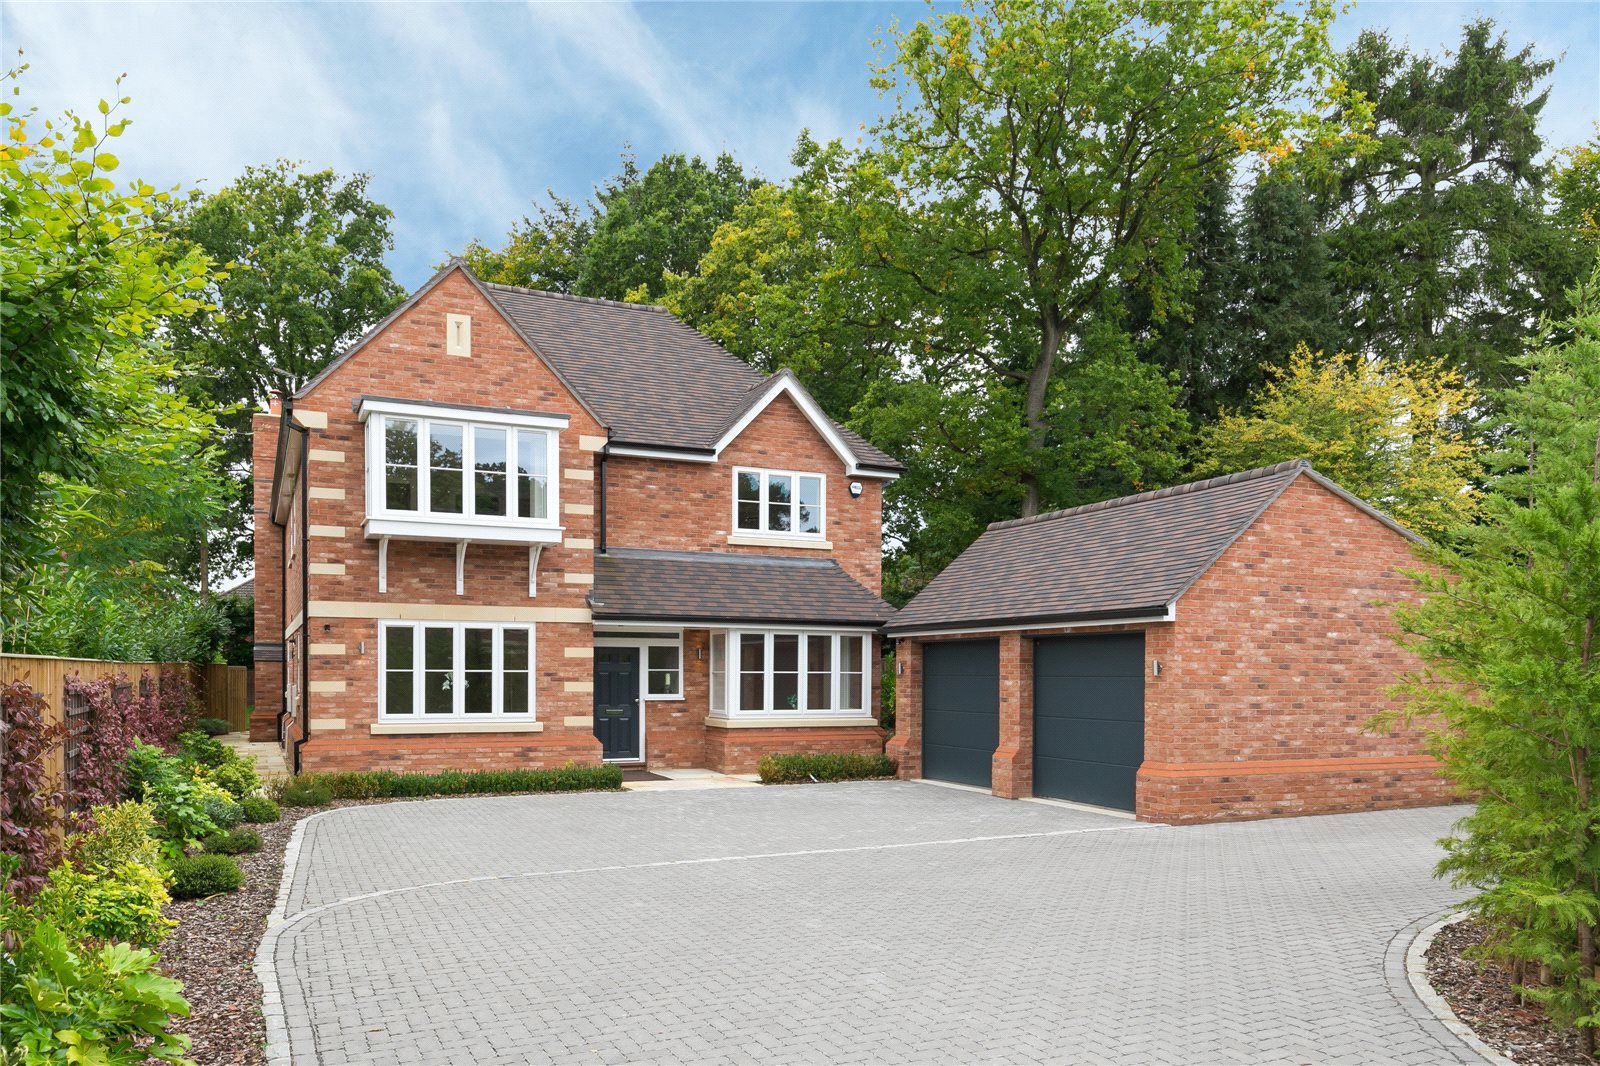 一戸建て のために 売買 アット Fulmer Road, Gerrards Cross, Buckinghamshire, SL9 Gerrards Cross, イギリス